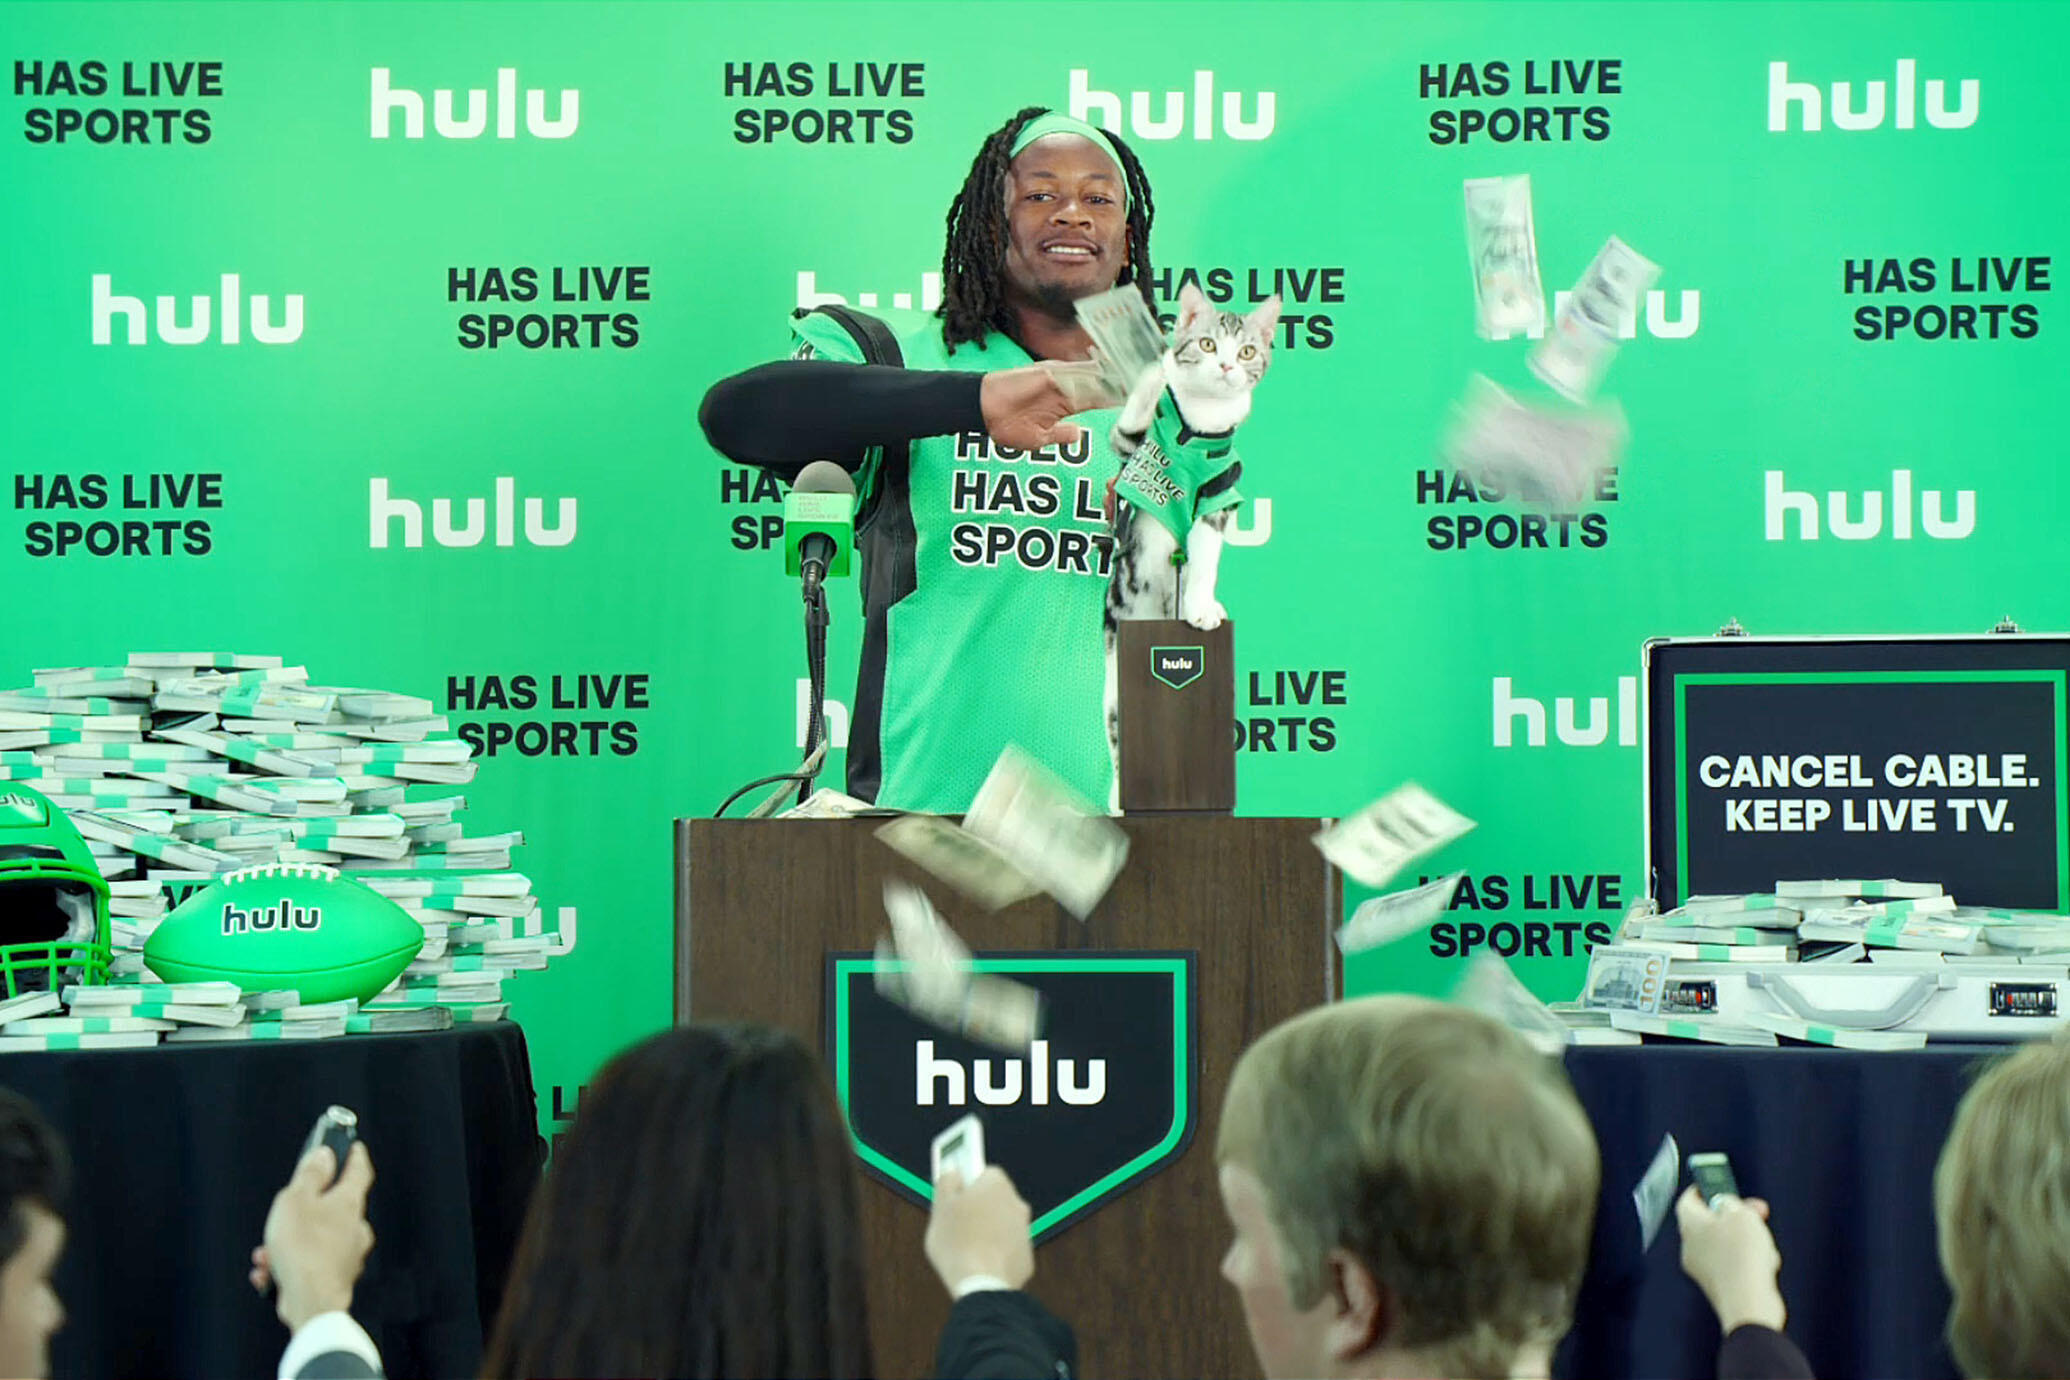 Hulu Live TV With Sports: Is Hulu good for Sports?